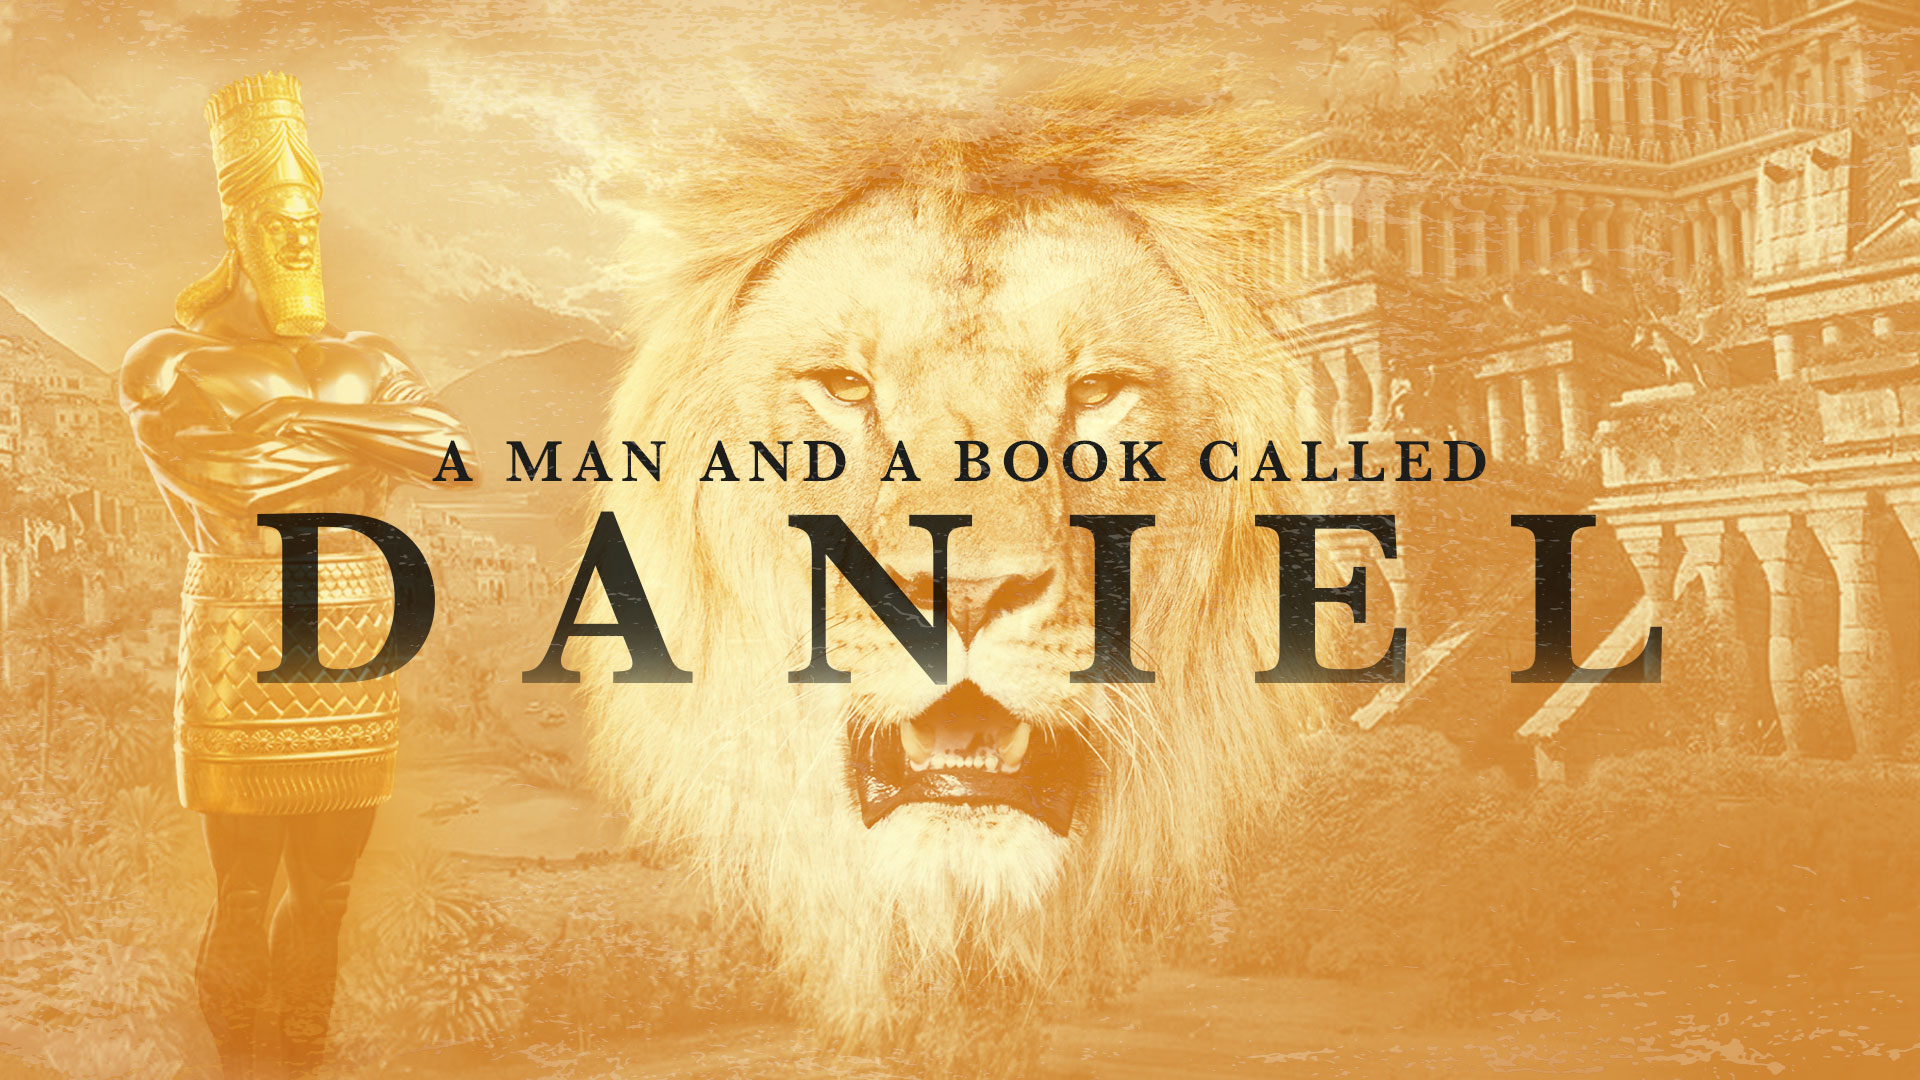 A Man And A Book Called Daniel, (Part 12) Belshazzar - The soul of a fool weighed in God's scales